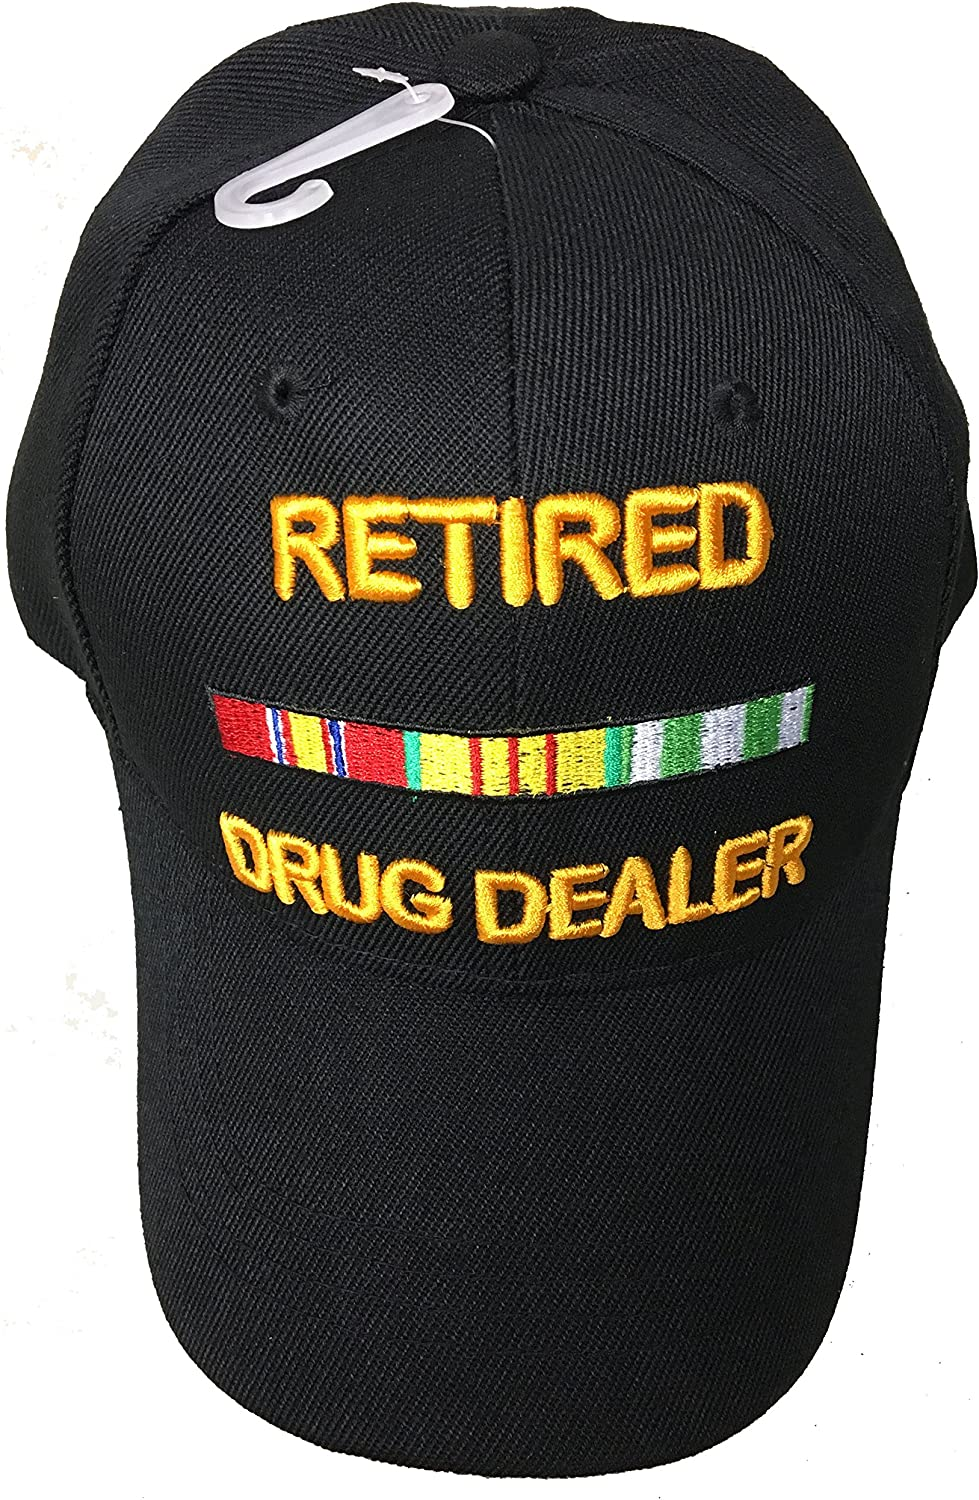 Retired Drug Dealer Baseball Style Embroidered Hat Funny Novelty Ball Fun Military Cap Black